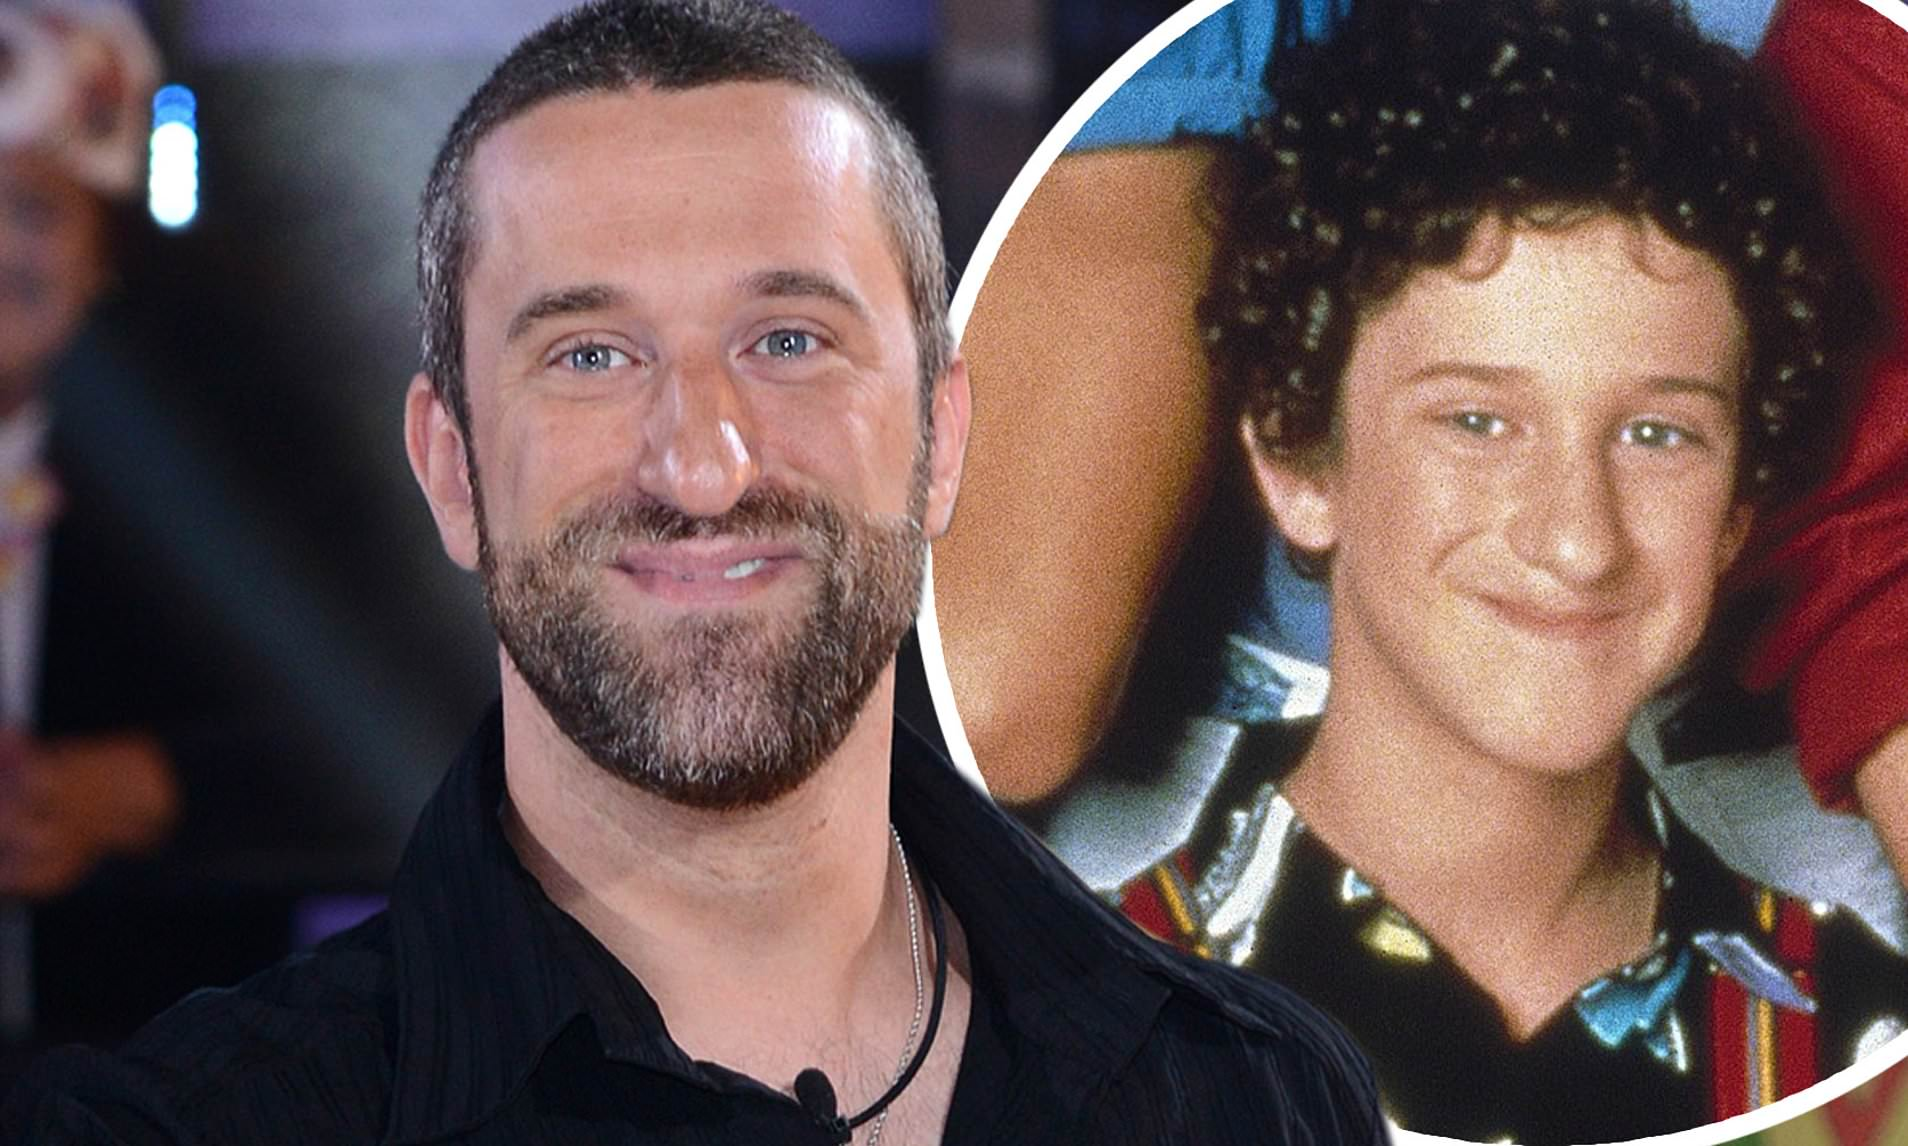 """Saved by the Bell' star Dustin Diamond has been diagnosed with stage 4 Cancer."